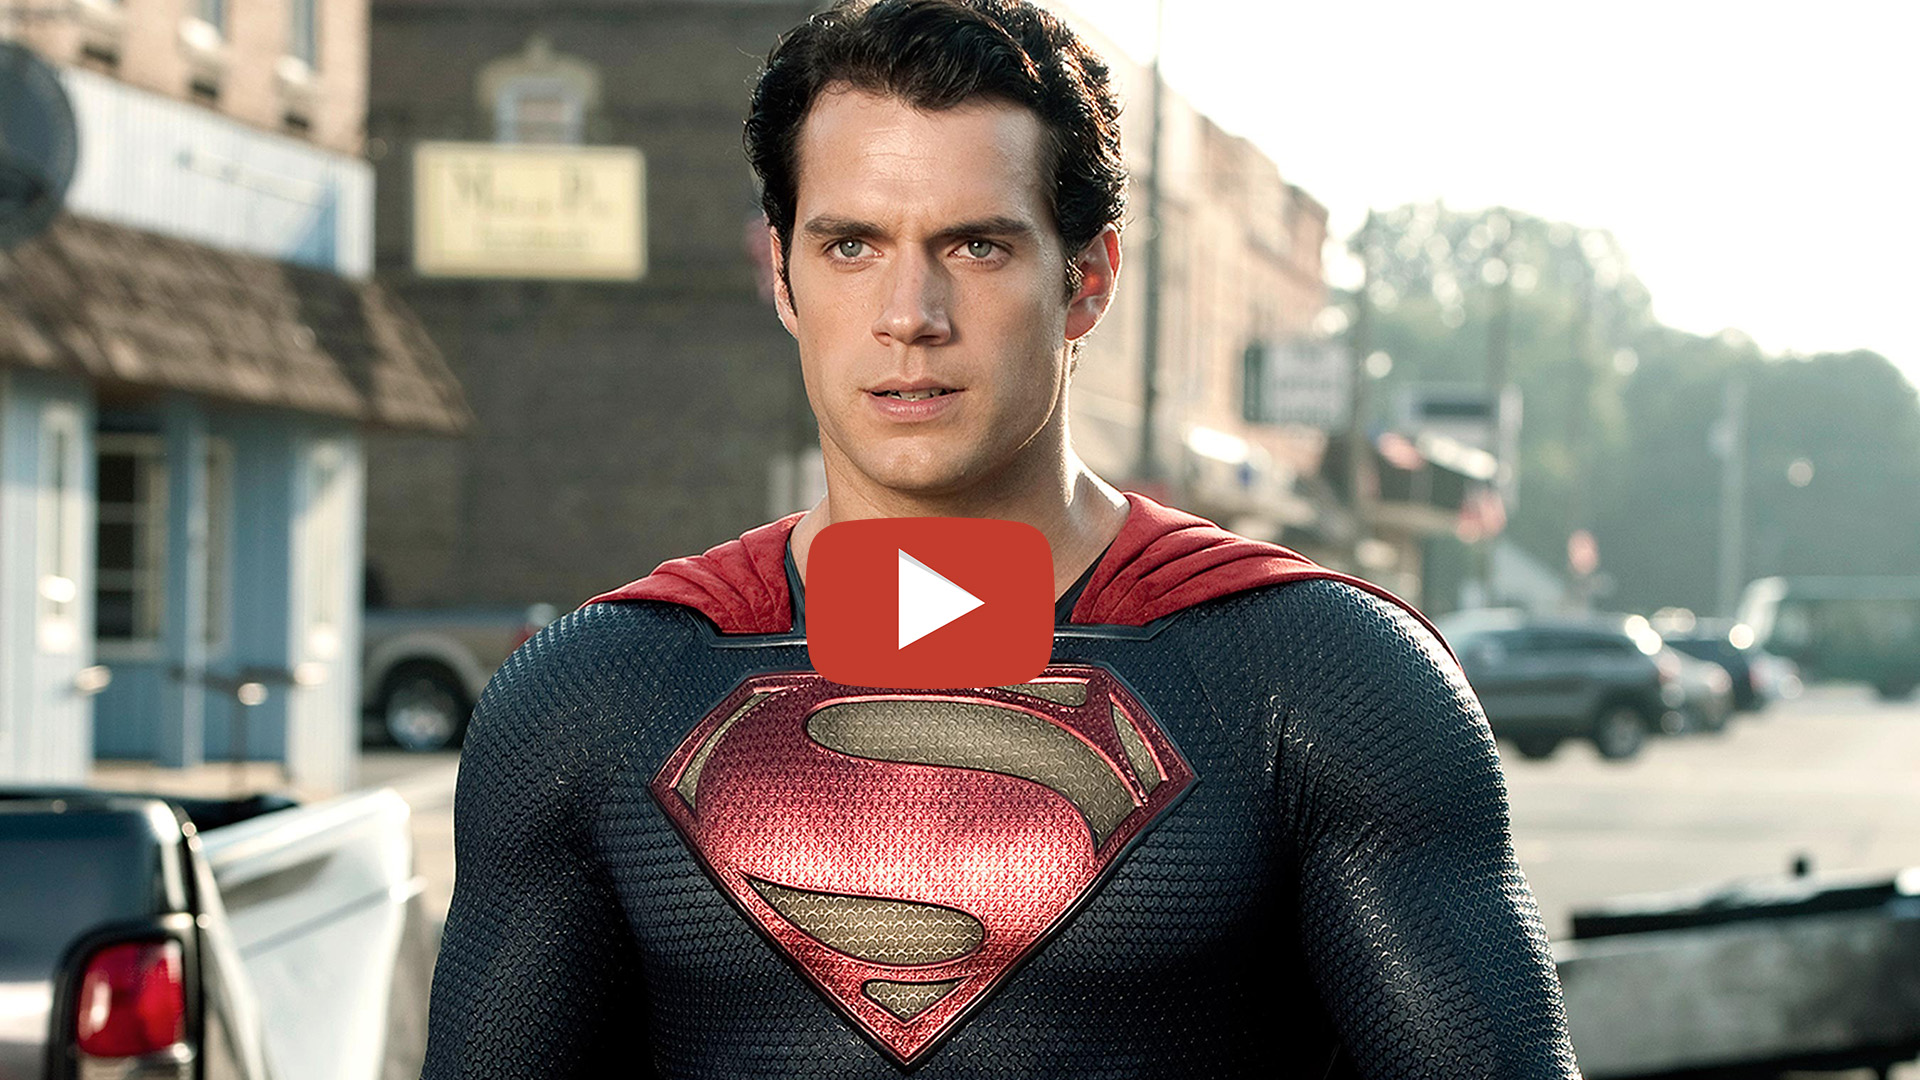 Video: Henry Cavill Out as Superman in DC Movies